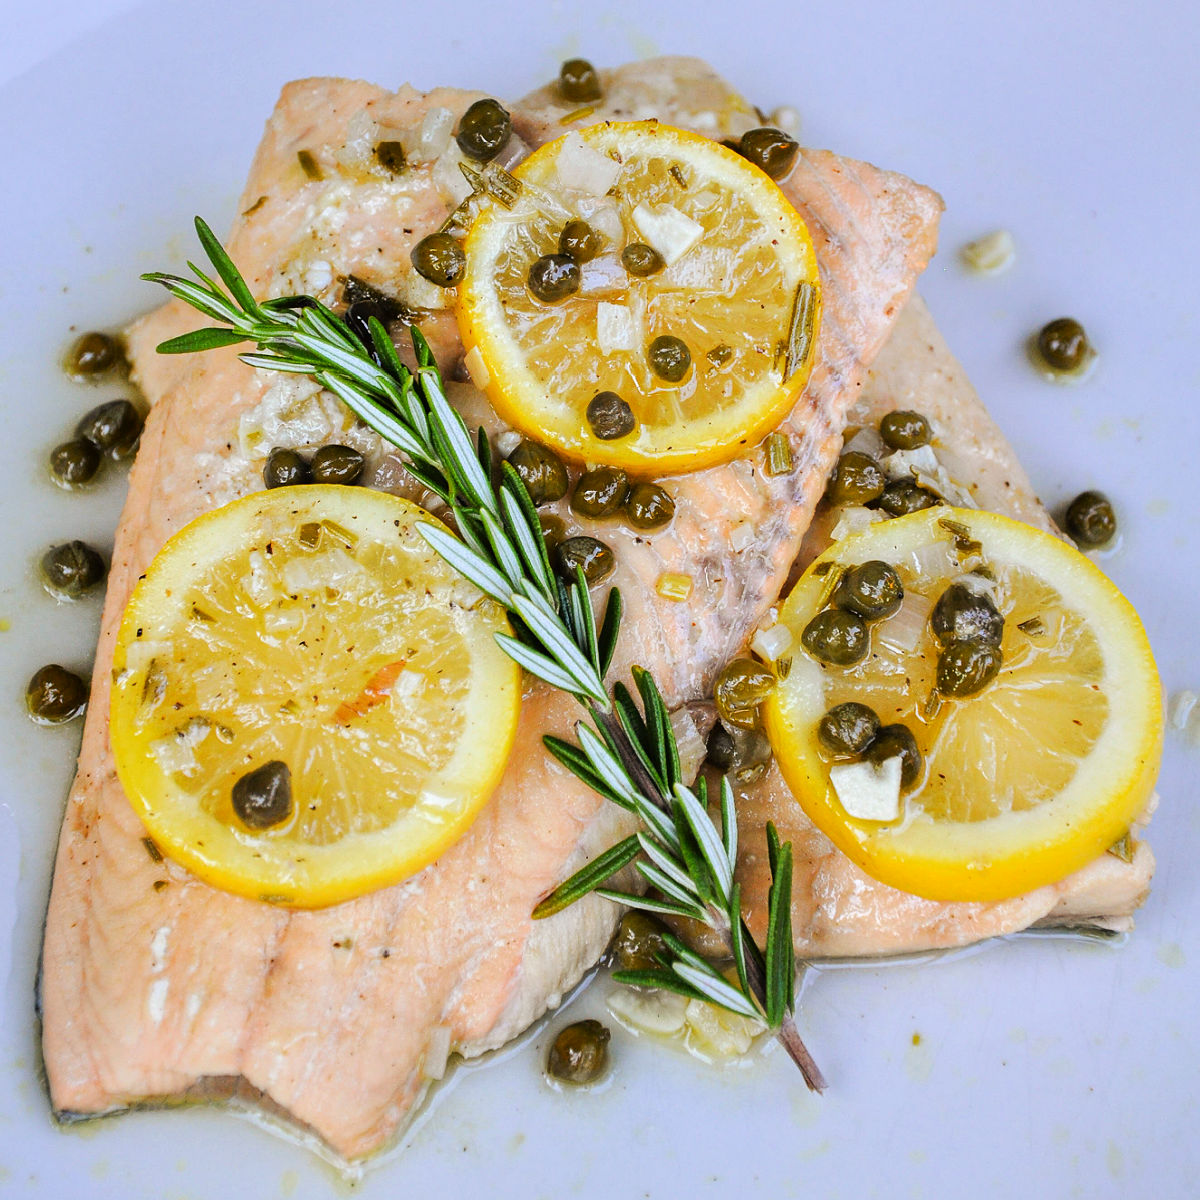 Two poached salmon filets garnished with lemon slices, capers and a sprig of fresh rosemary.